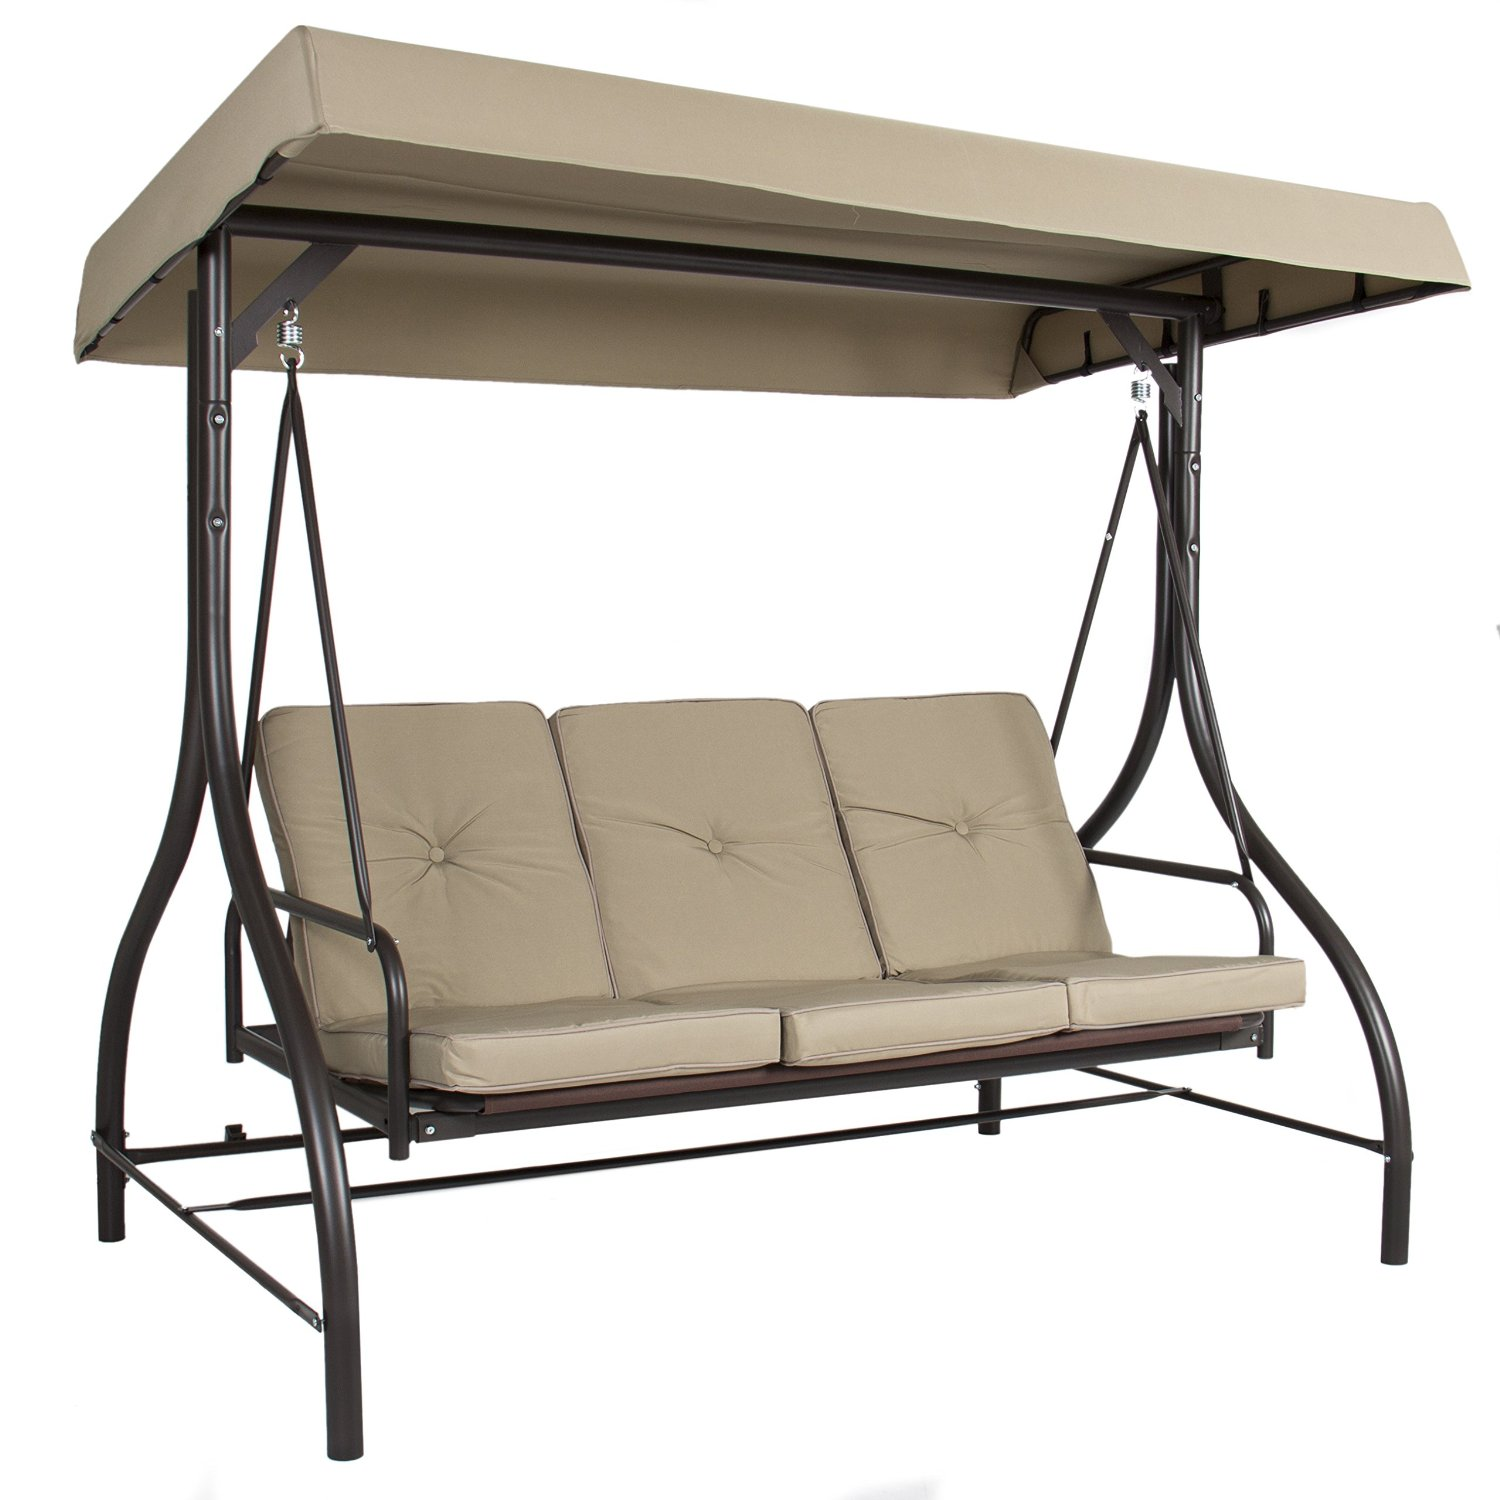 Outdoor-3-Person-Patio-Porch-Swing-Hammock-Bench-  sc 1 st  eBay & Outdoor 3-Person Patio Porch Swing Hammock Bench Canopy Loveseat ...